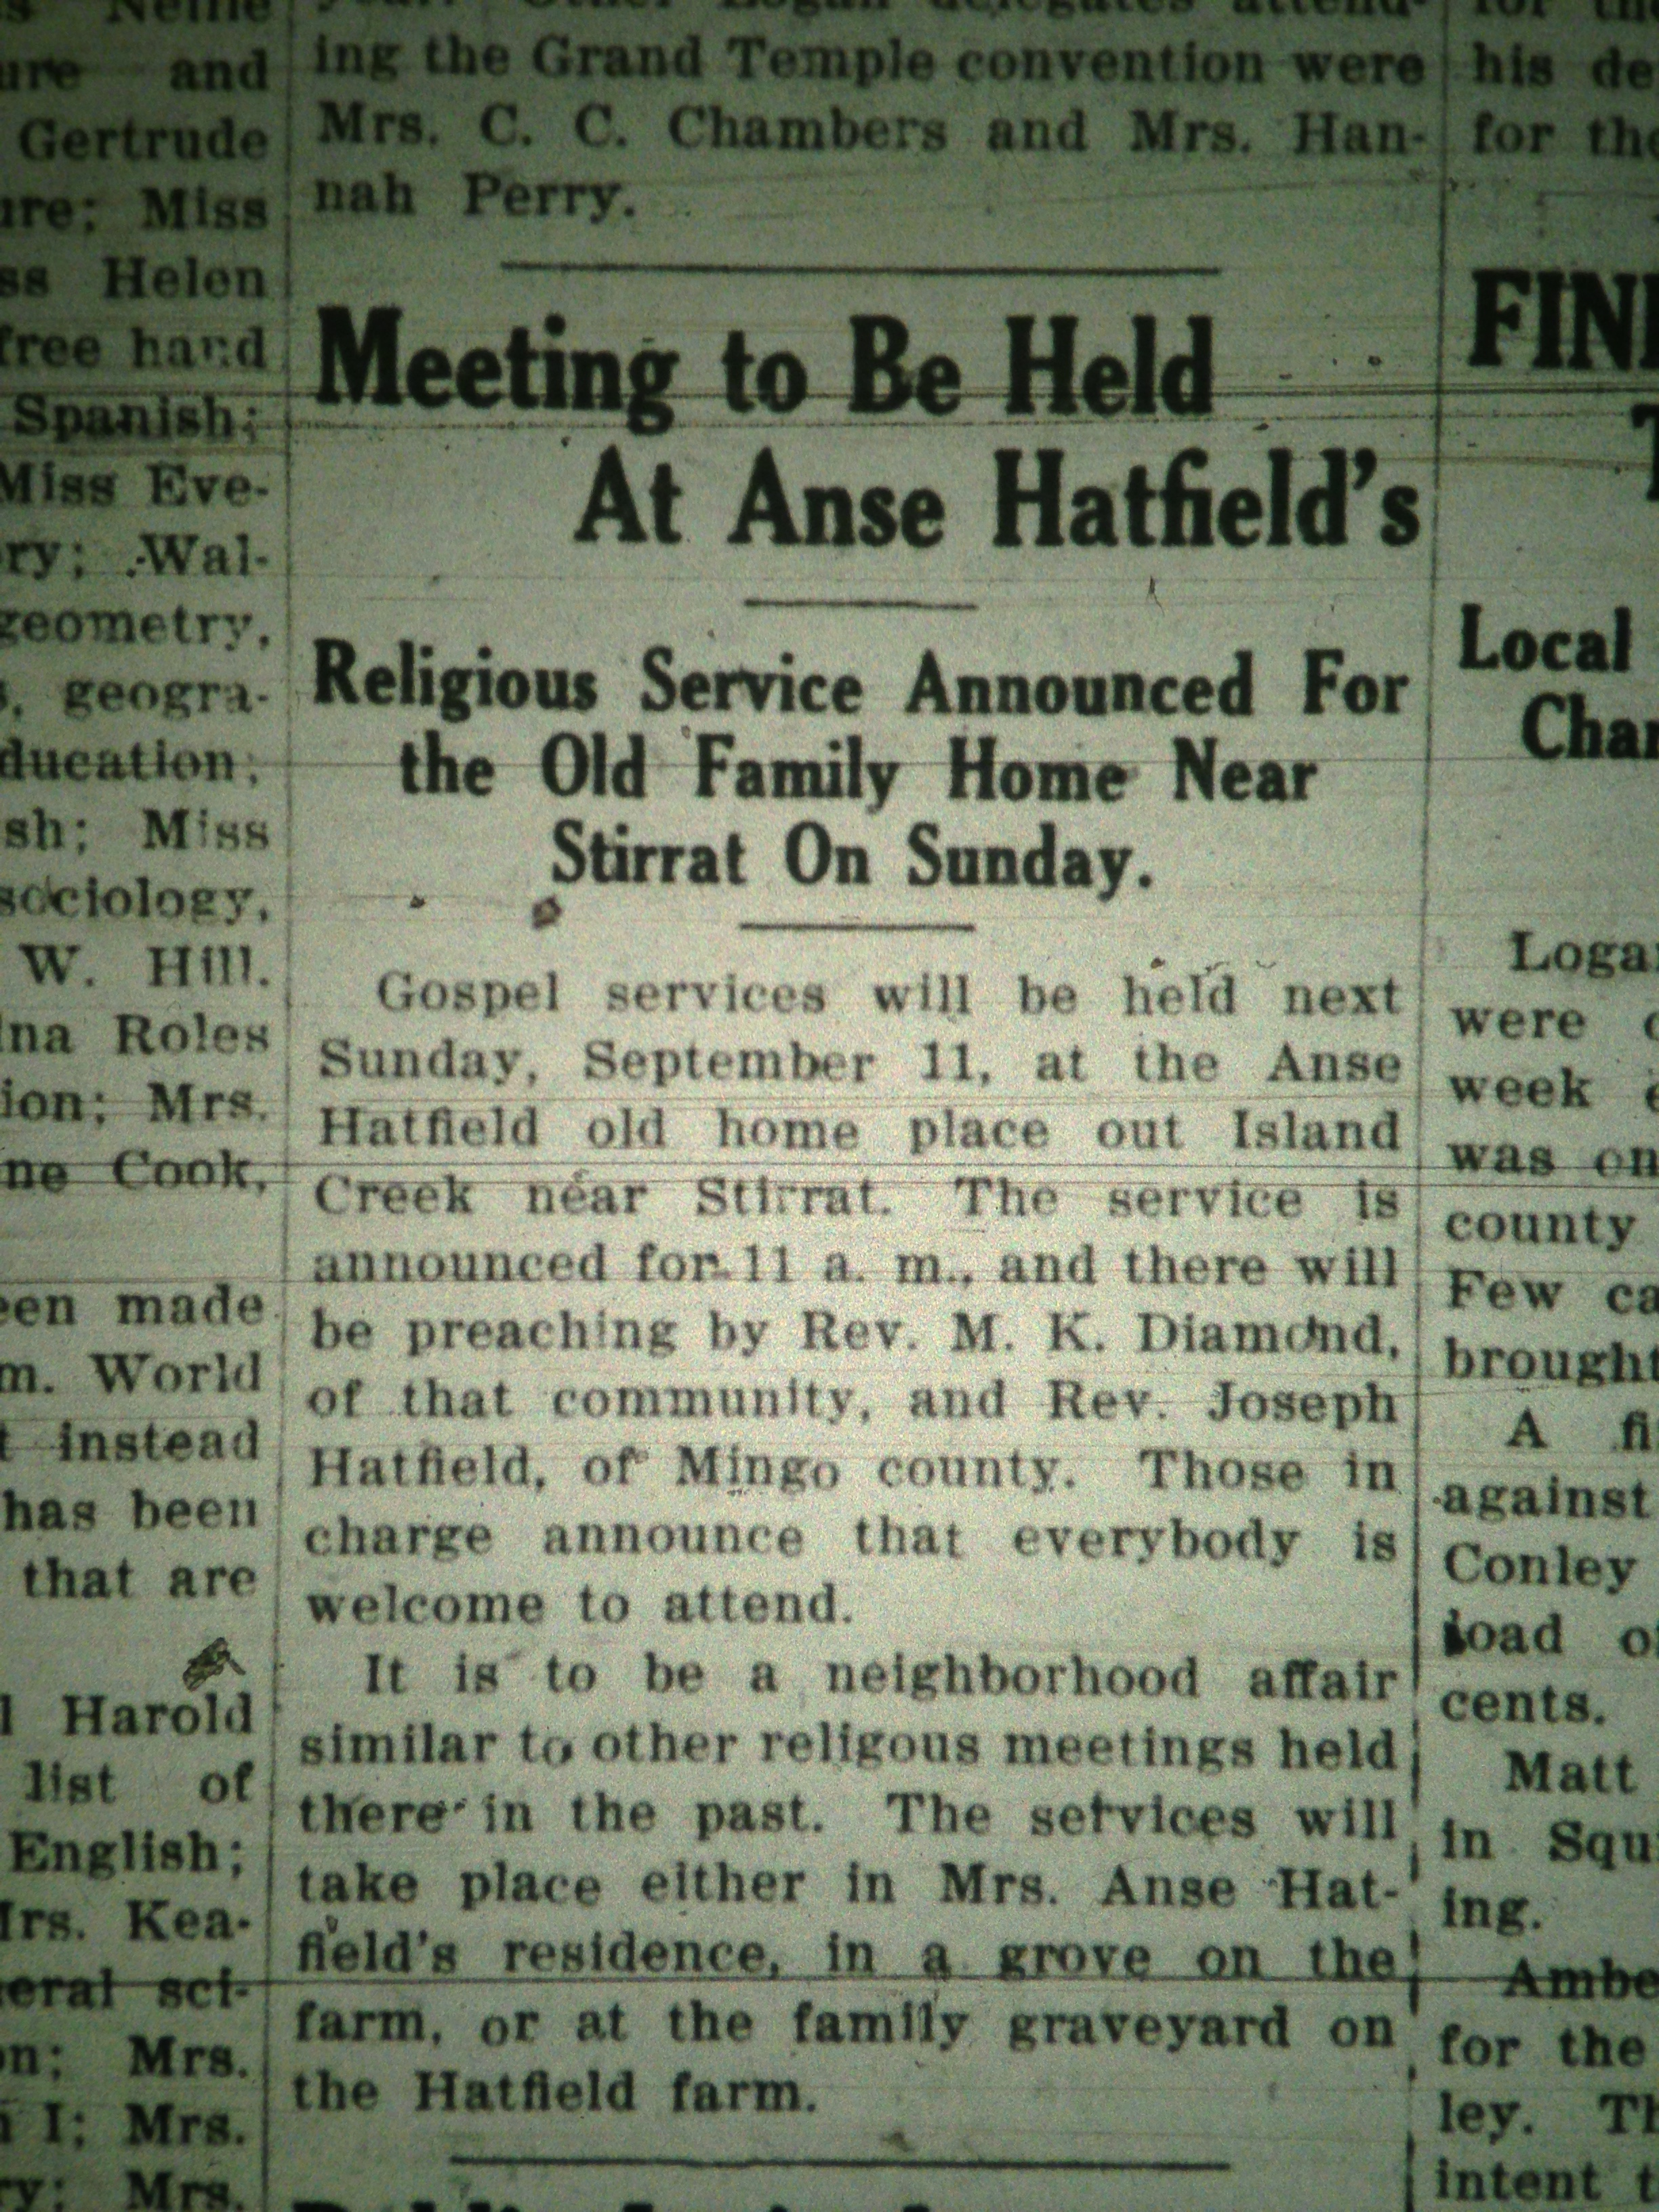 Church Meeting at Anse Hatfield's Home LB 09.06.1927 1.JPG